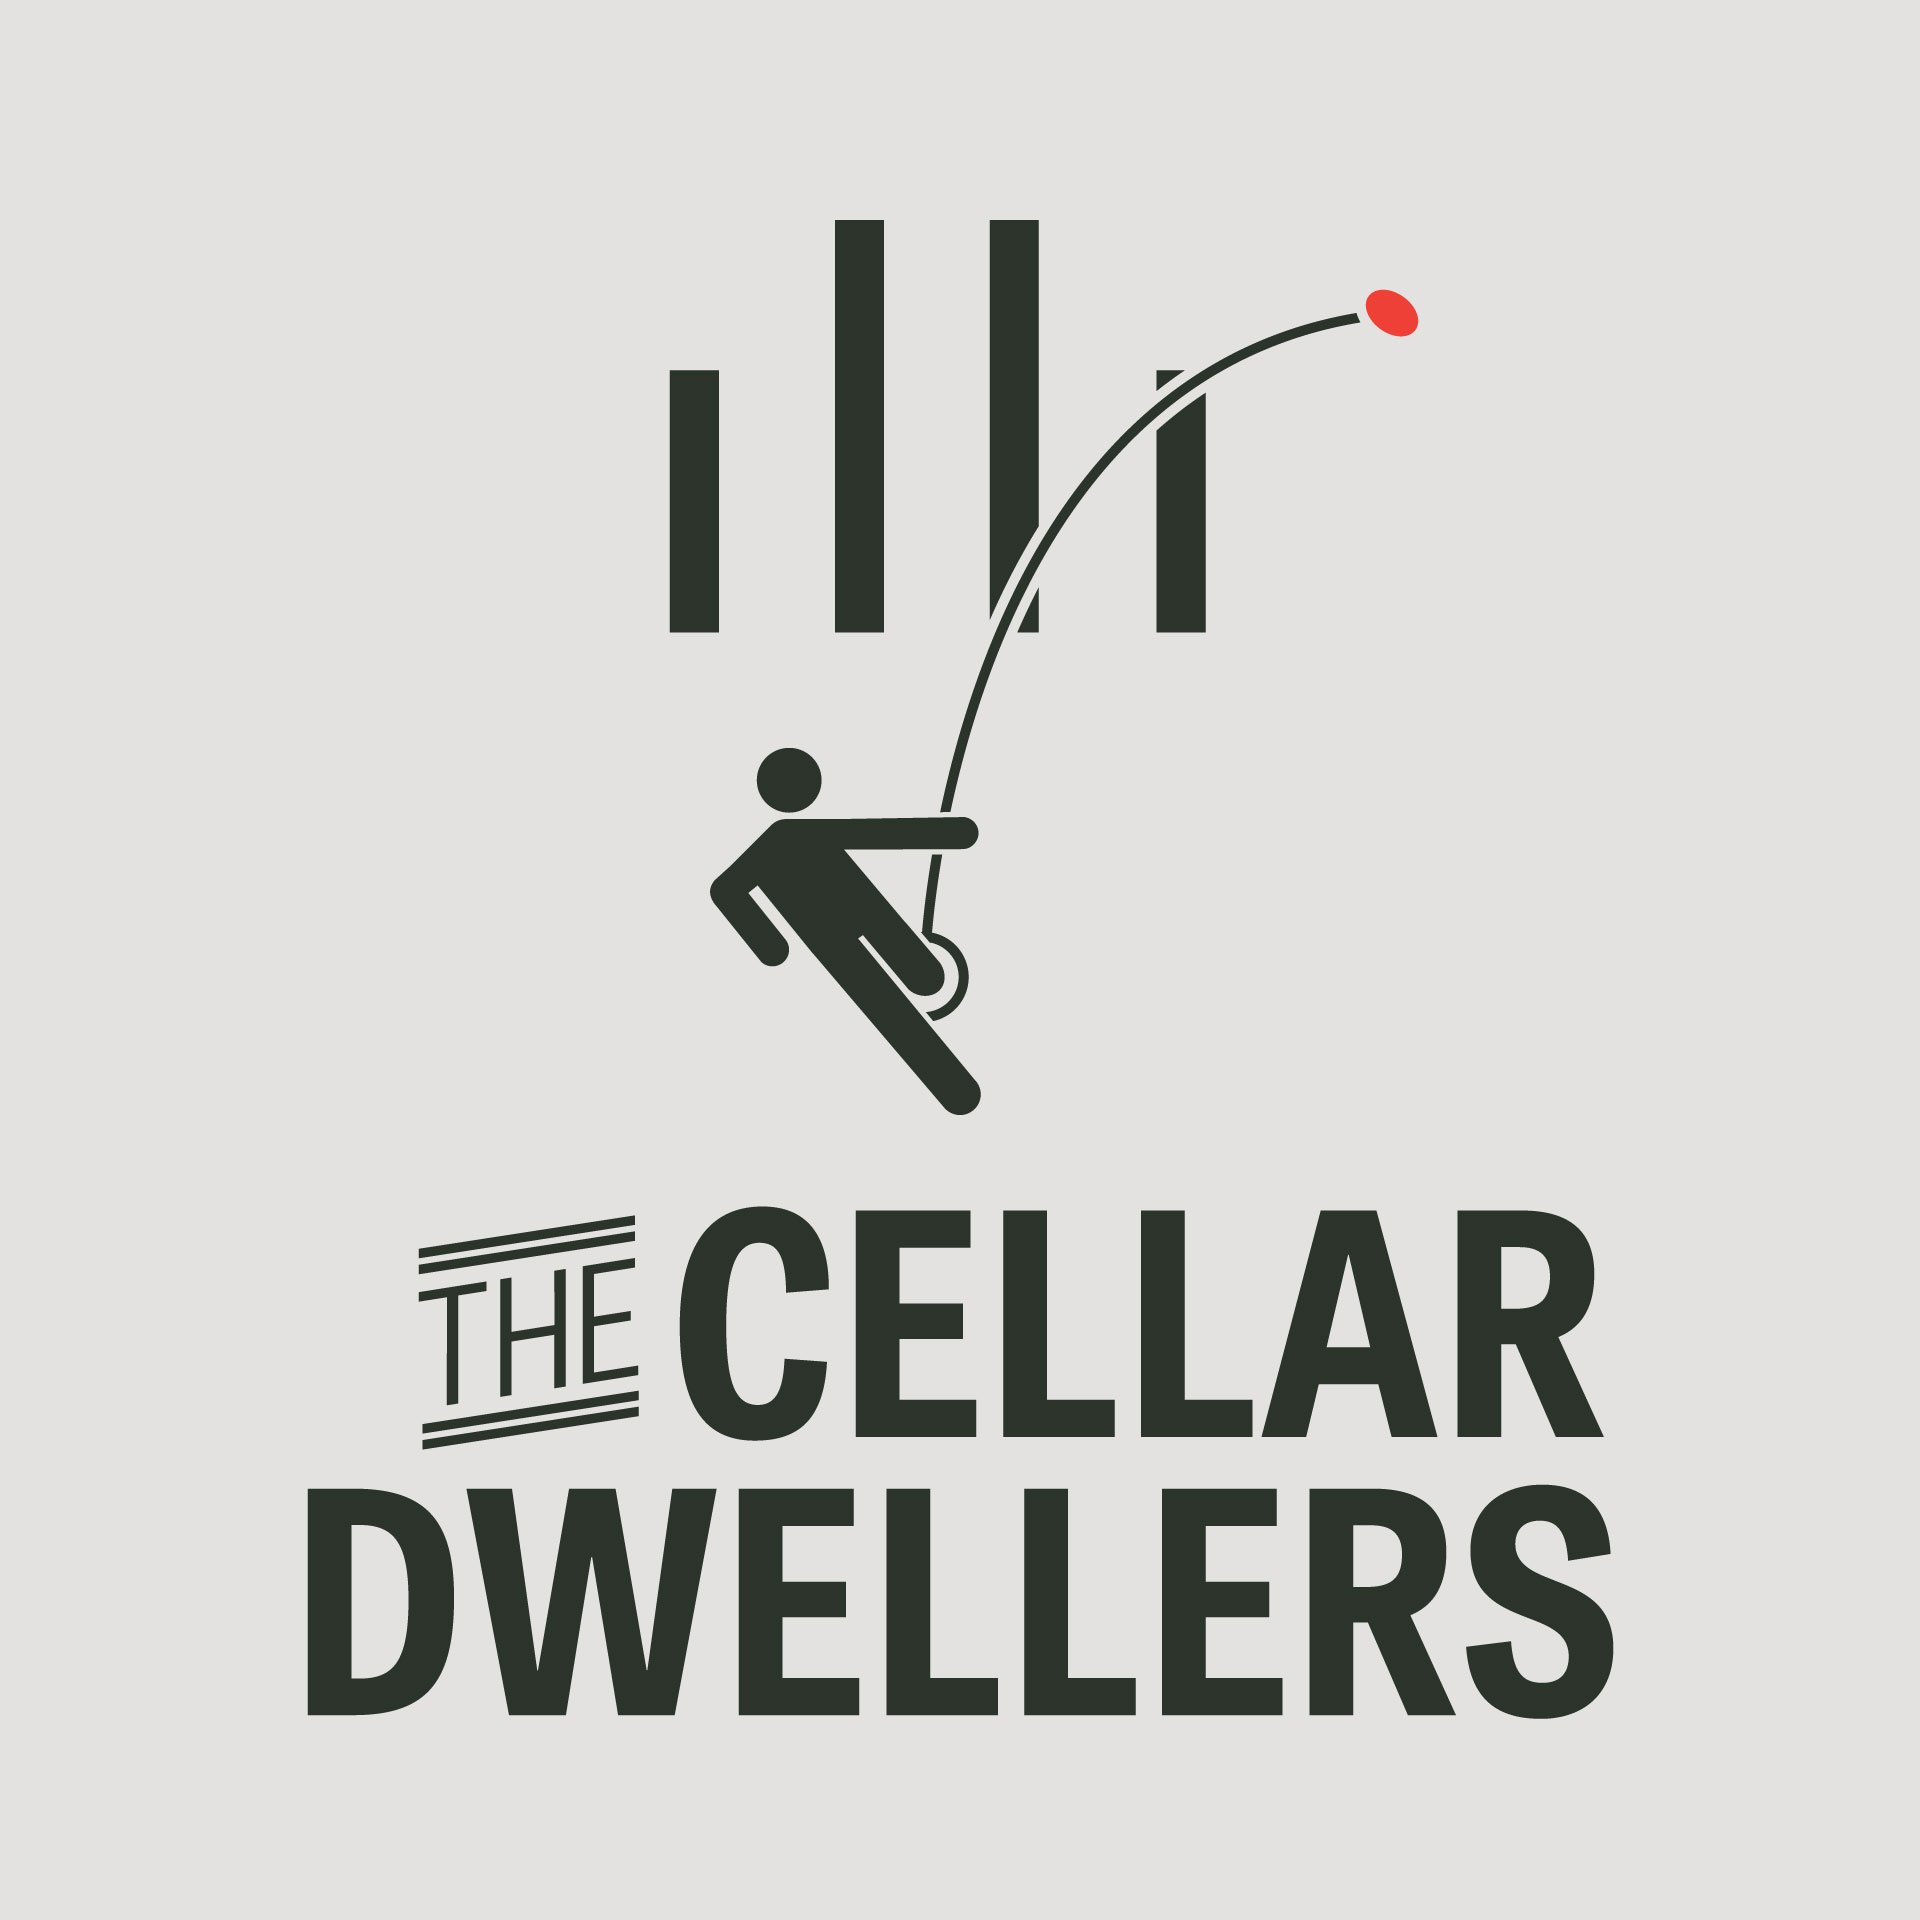 The-Cellar-Dwellers_white.jpg